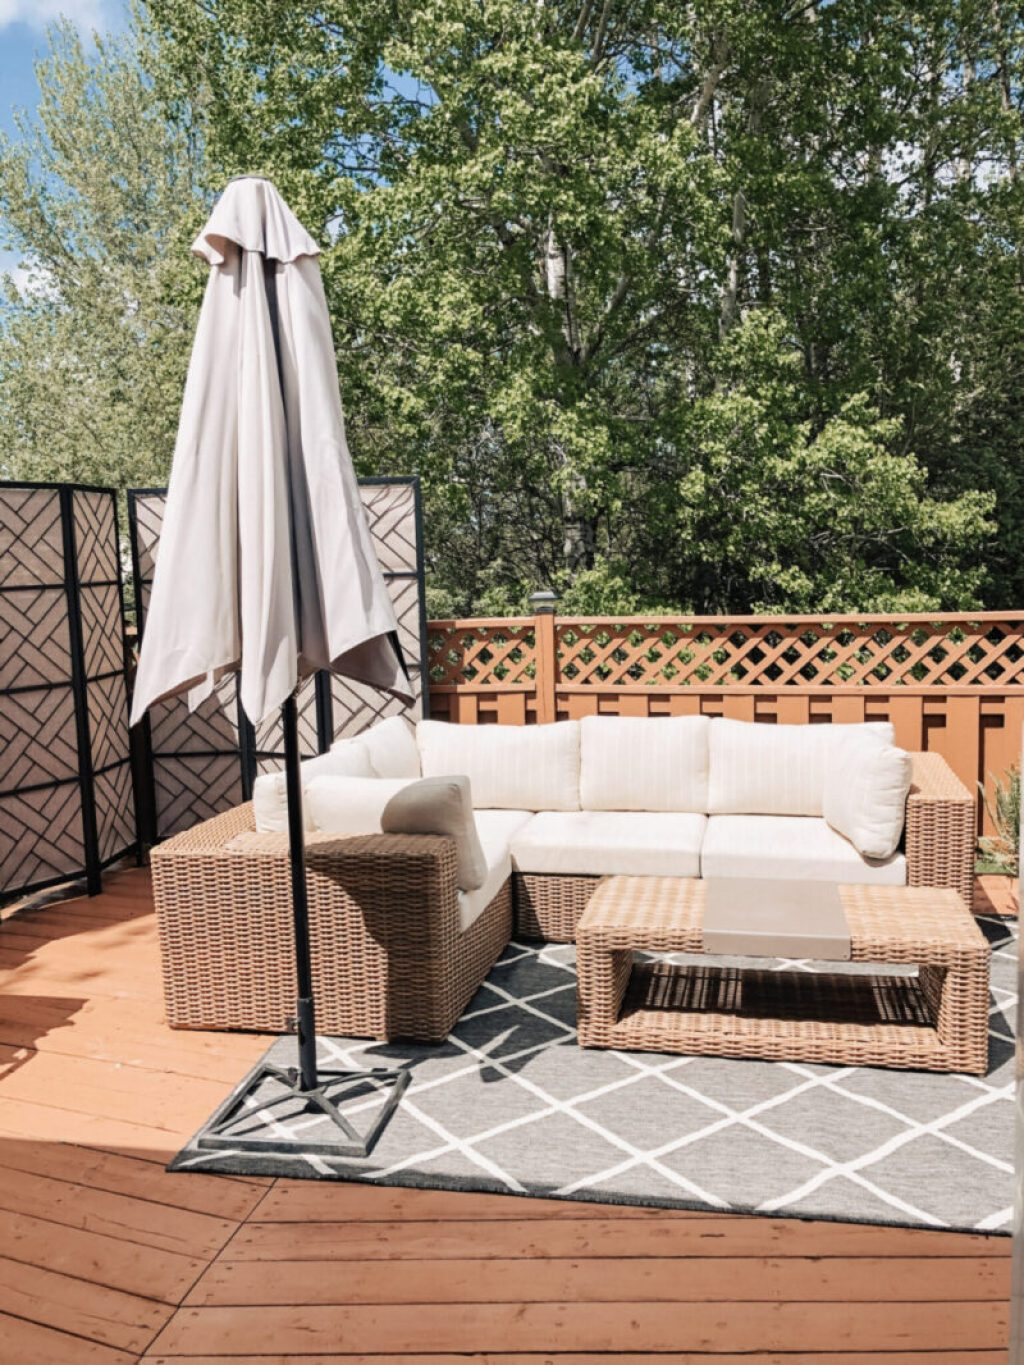 Tips for deck or patio decor and design for the ultimate outdoor oasis! Our deck renovation before and after transformation using solid stain. Solid Deck Stain | Wood Stain | Deck Staining | Deck Renovation | Patio Furniture | Deck Design | Privacy Fence | Privacy Screen | Patio Decor | Outdoor Living | Backyard Space | Outdoor Decor | Tofino Sectional Canvas Collection | Olympic Timberline Wood Stain